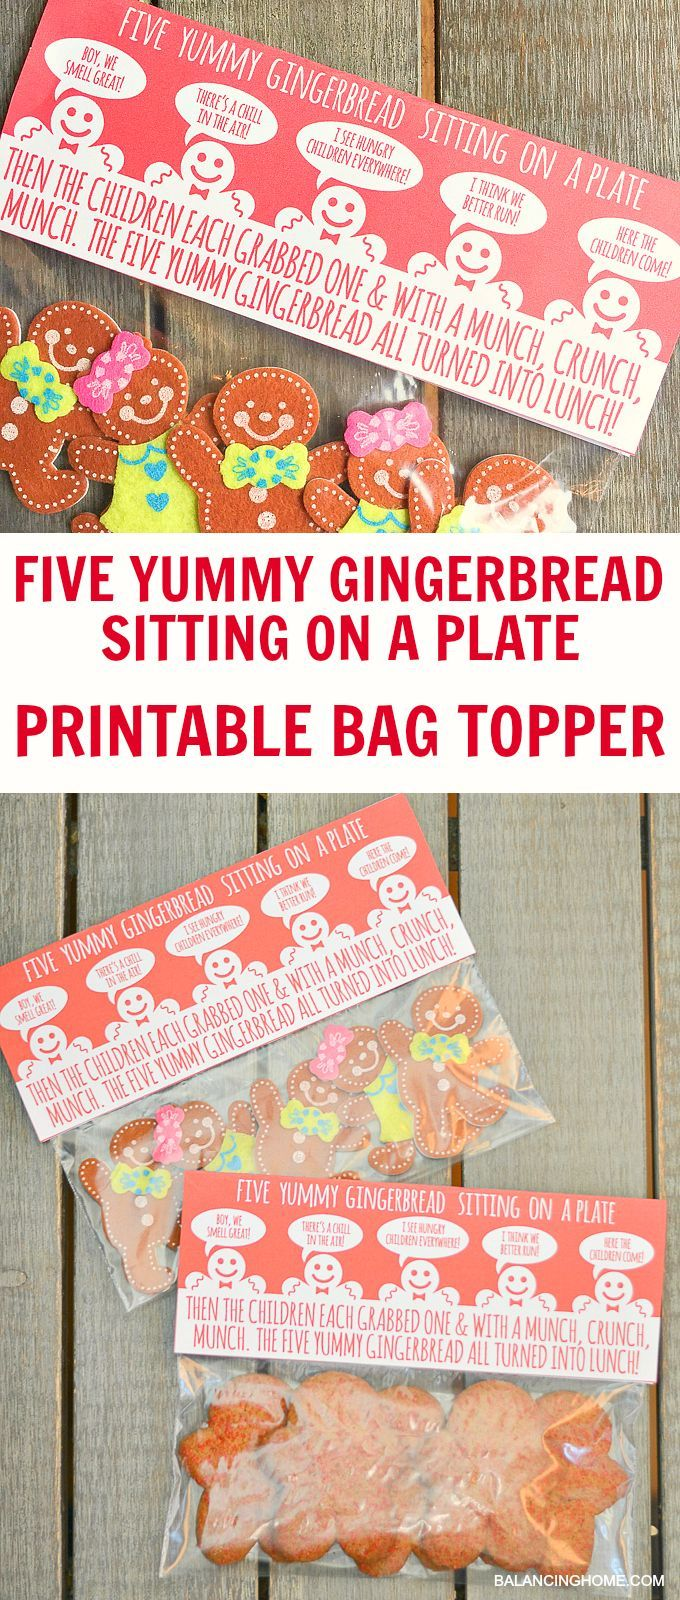 Five Yummy Gingerbread Sitting on a Plate bag topper printable. makes for a great Christmas treat!